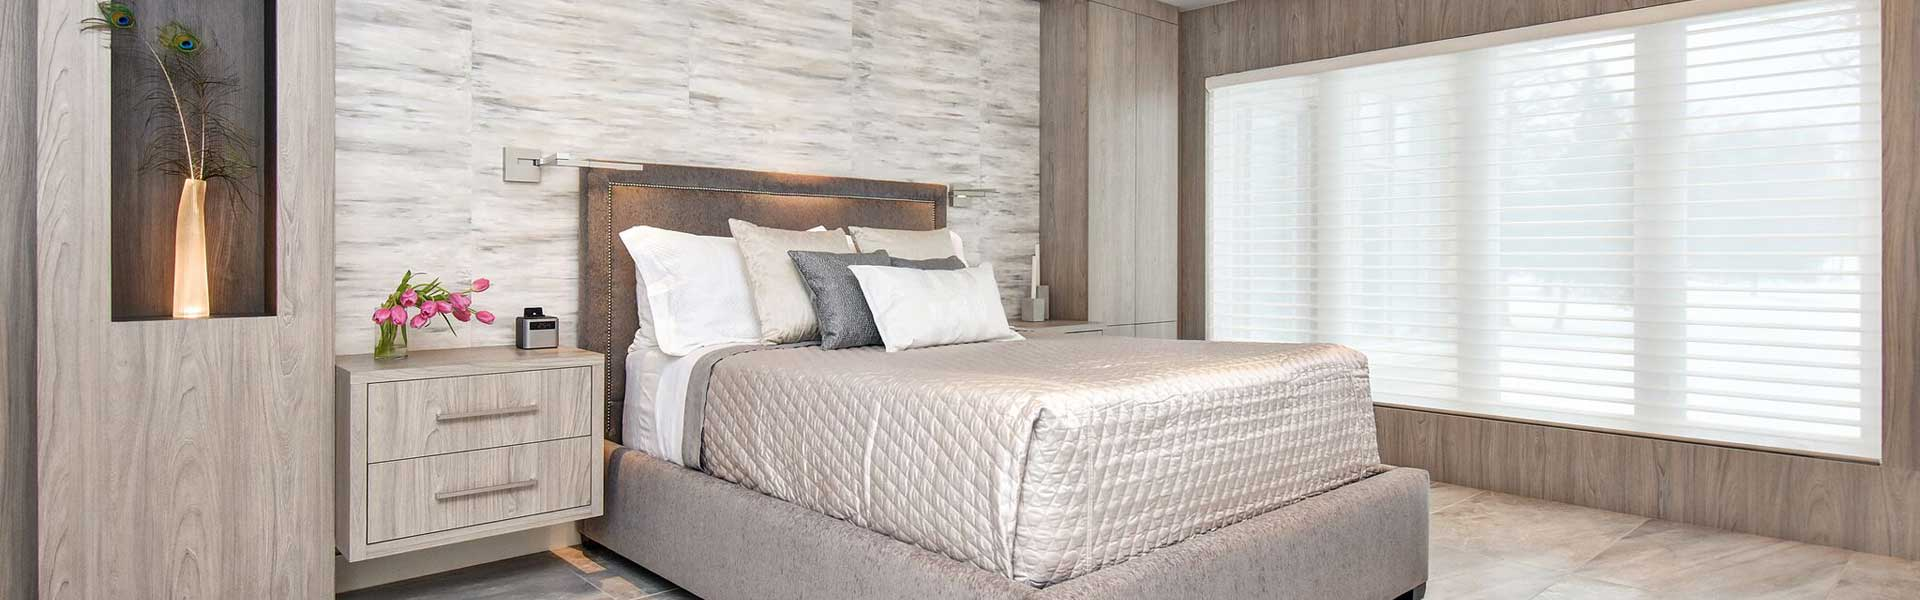 Contemporary master bedroom, large format porcelain tiles on floor, wood panelling on walls, upholstered bed flanked by contemporary wall sconces, reading lights, floating nightstands, custom cabinetry, modern bedroom, interior designer cornwall, interior designer ottawa, Master Clinic Gallery - Sheridan Interiors, sheridan interiors kitchens and baths